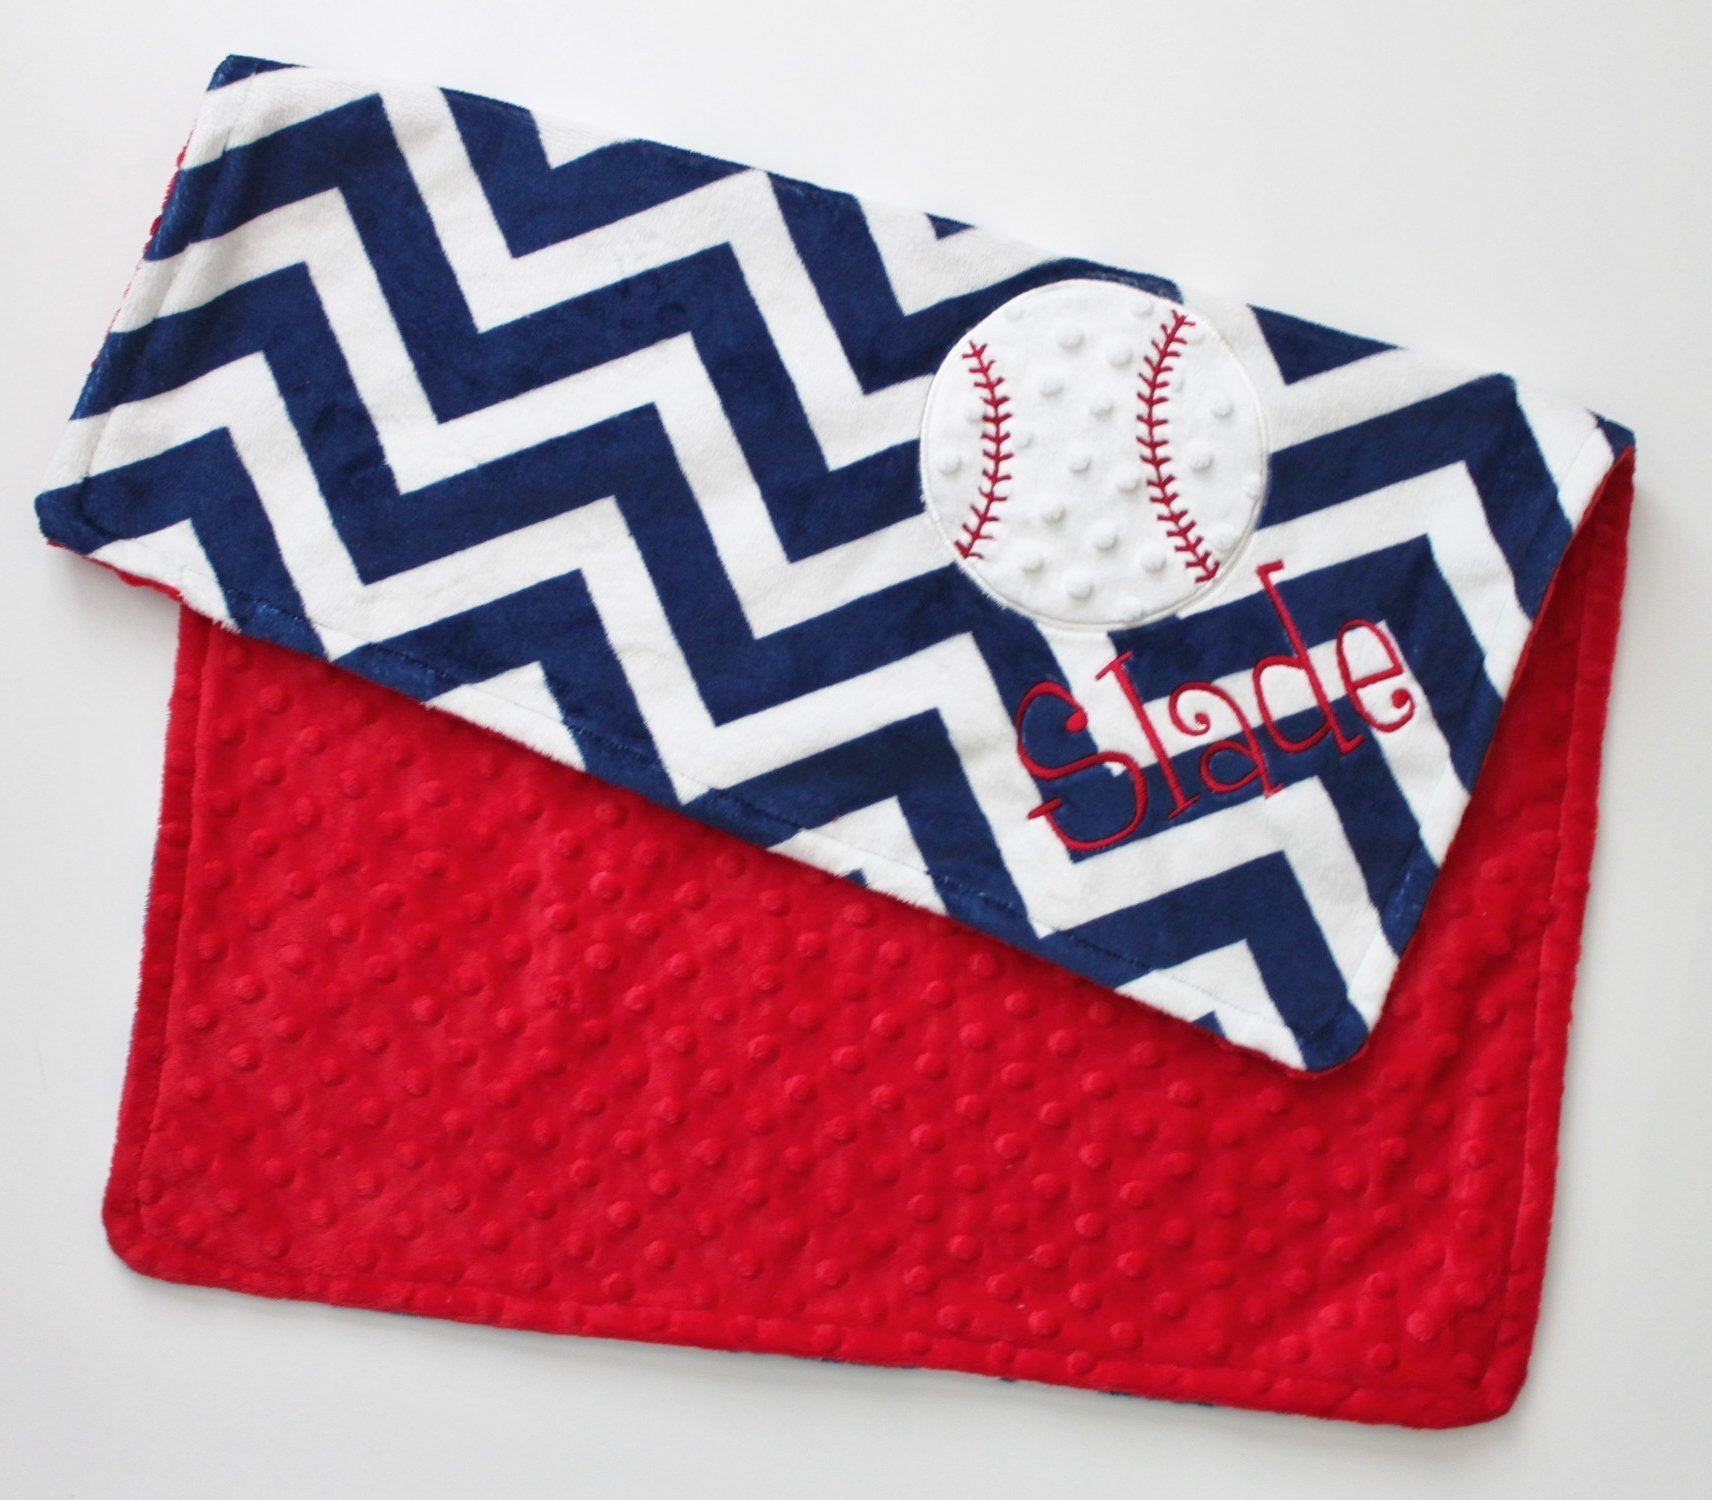 Personalized Double Minky Blanket with Baseball Applique in Red, White and Navy Blue Chevron